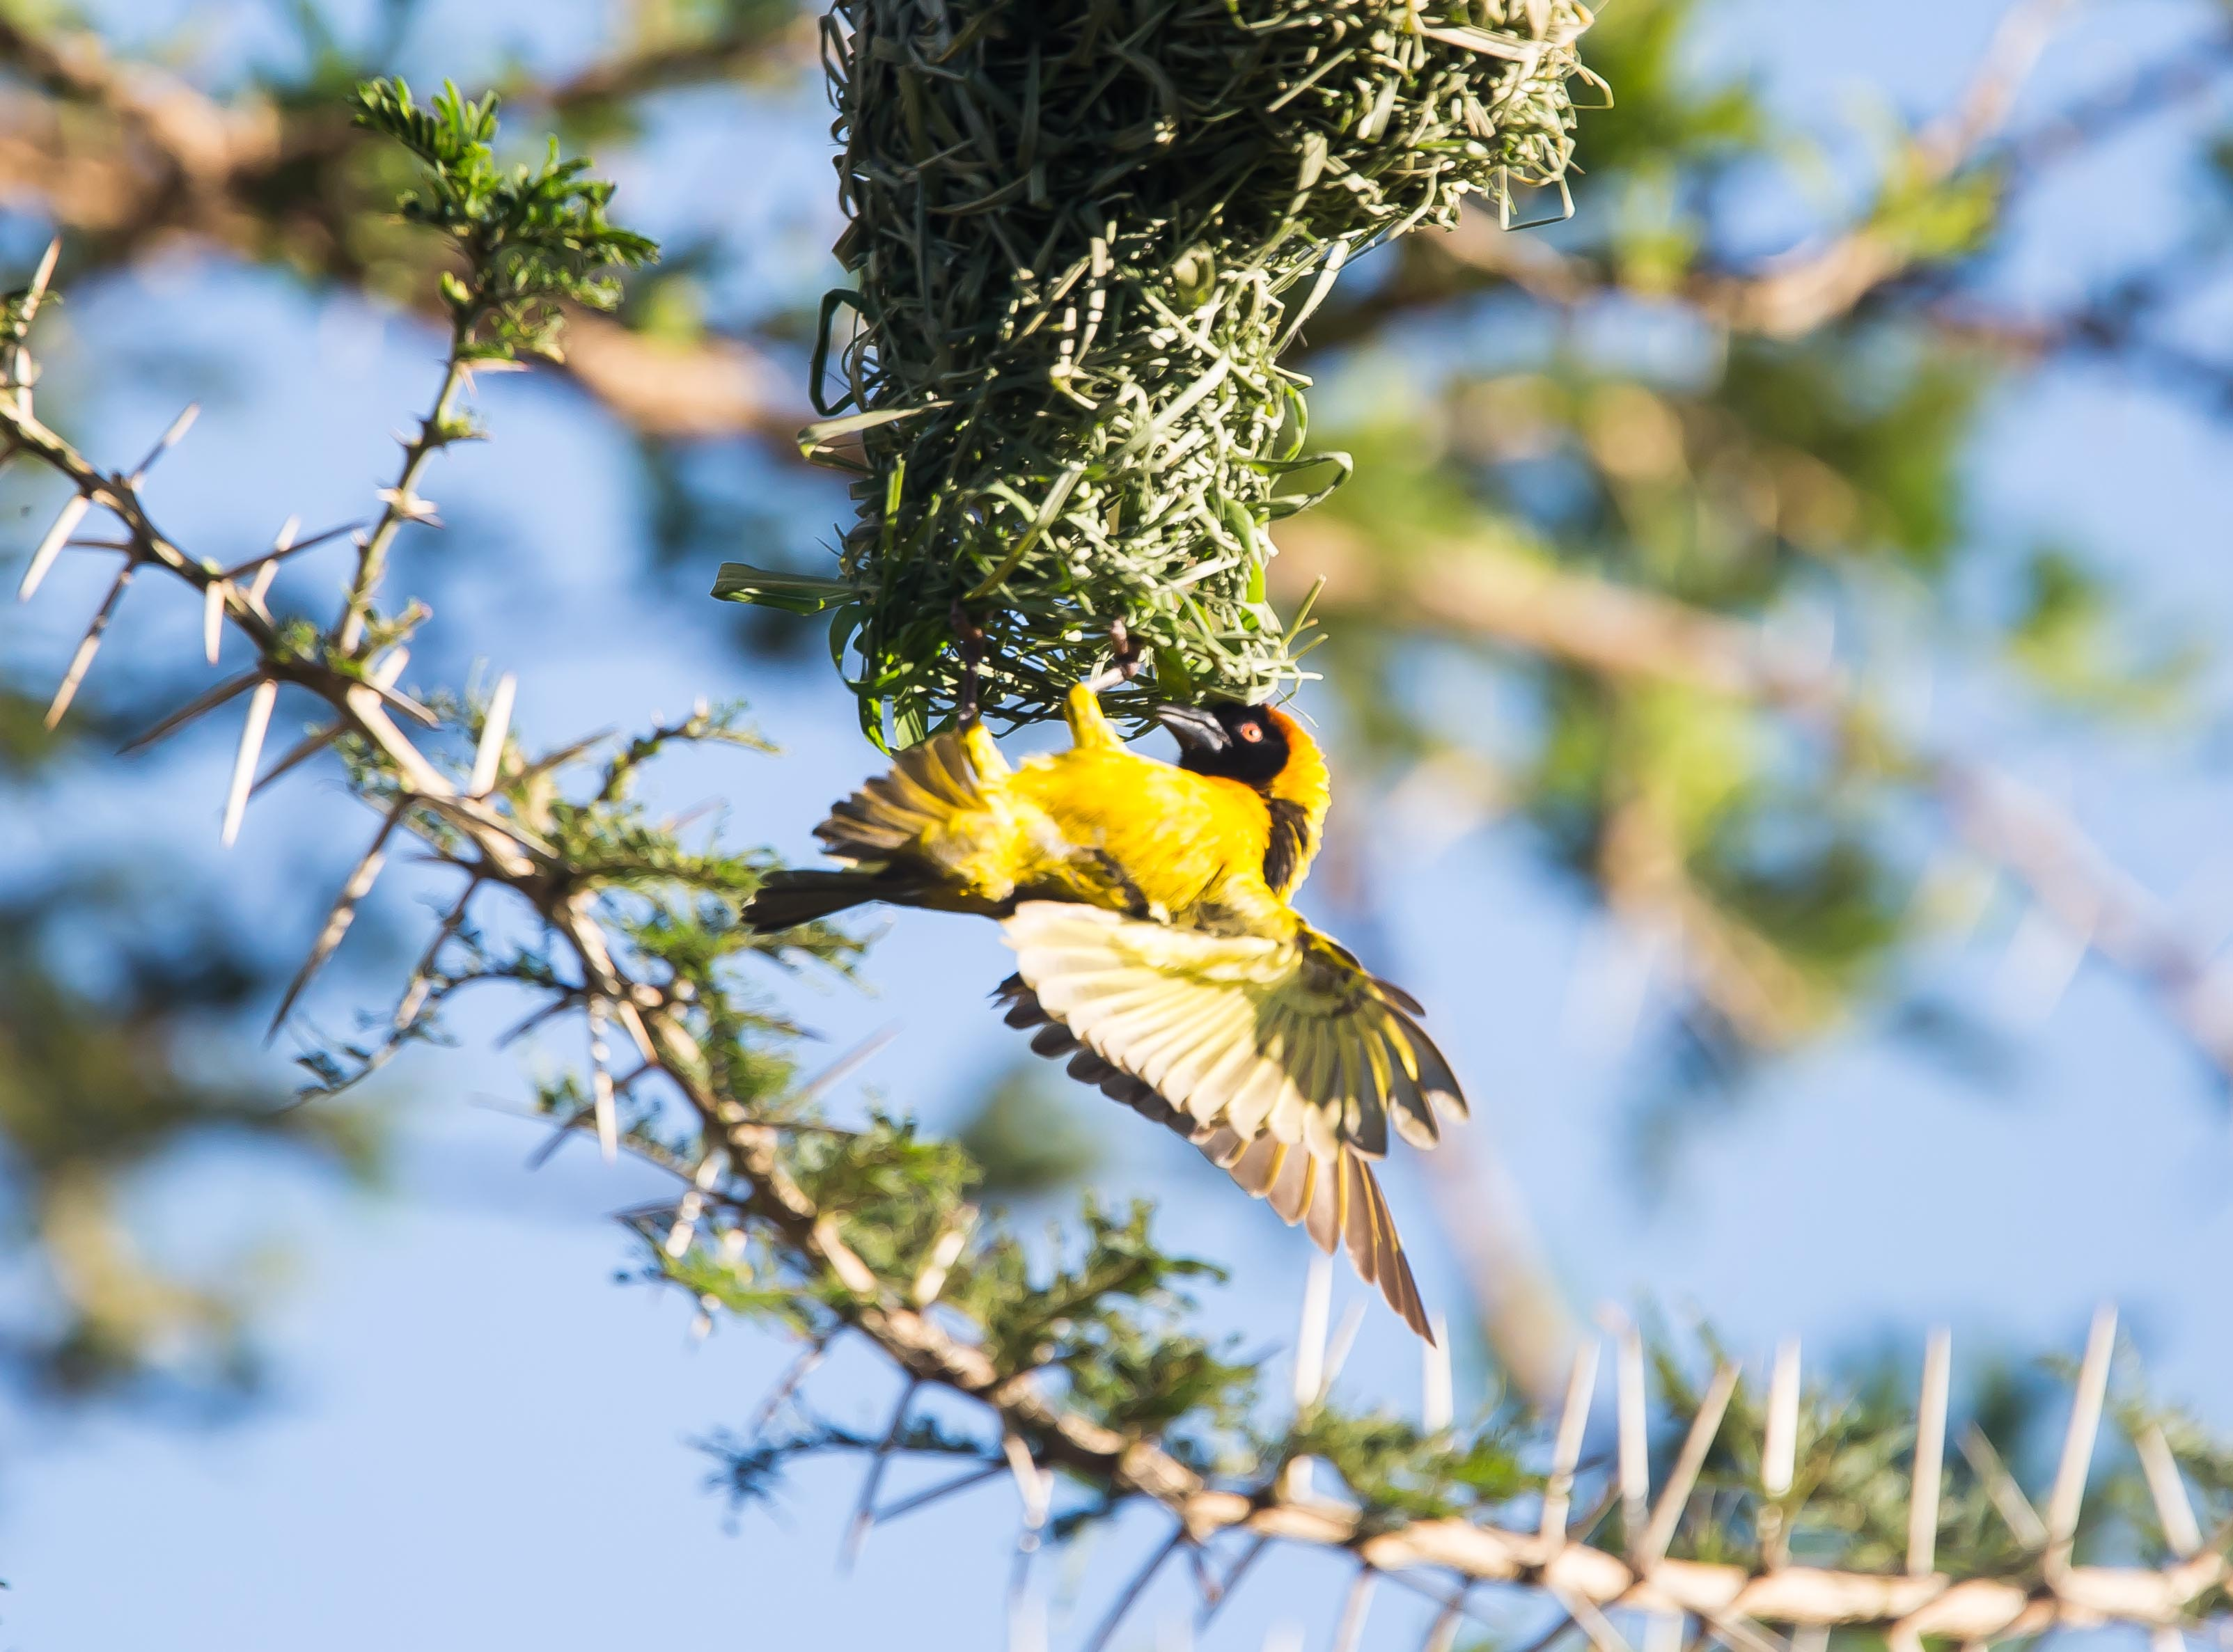 Masked Weaver (photo by Will Taylor).